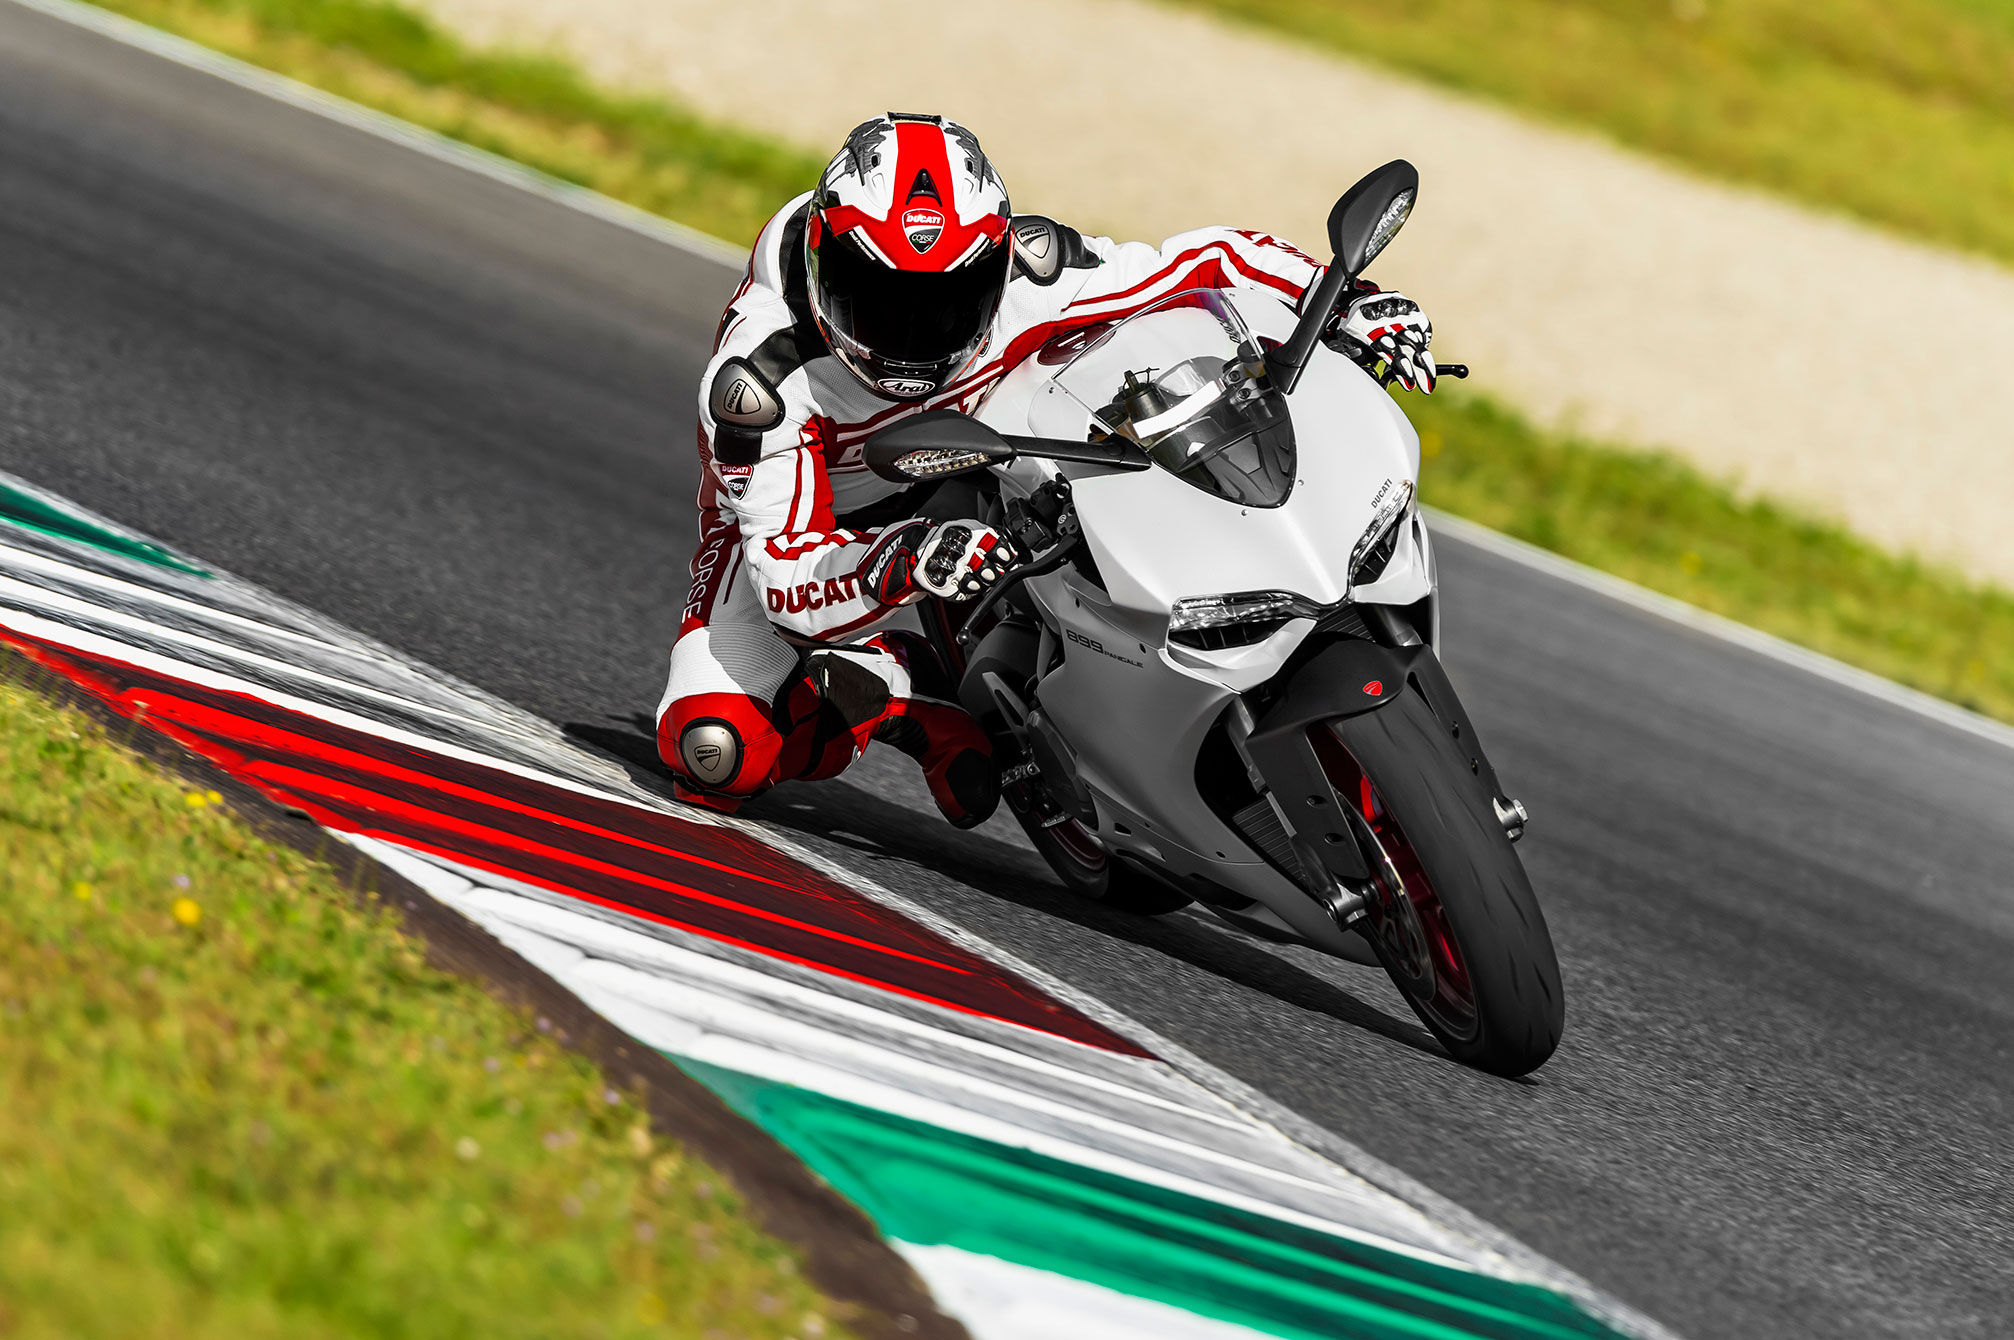 Ducati Superbike 899 Panigale 2014 wallpapers #13570